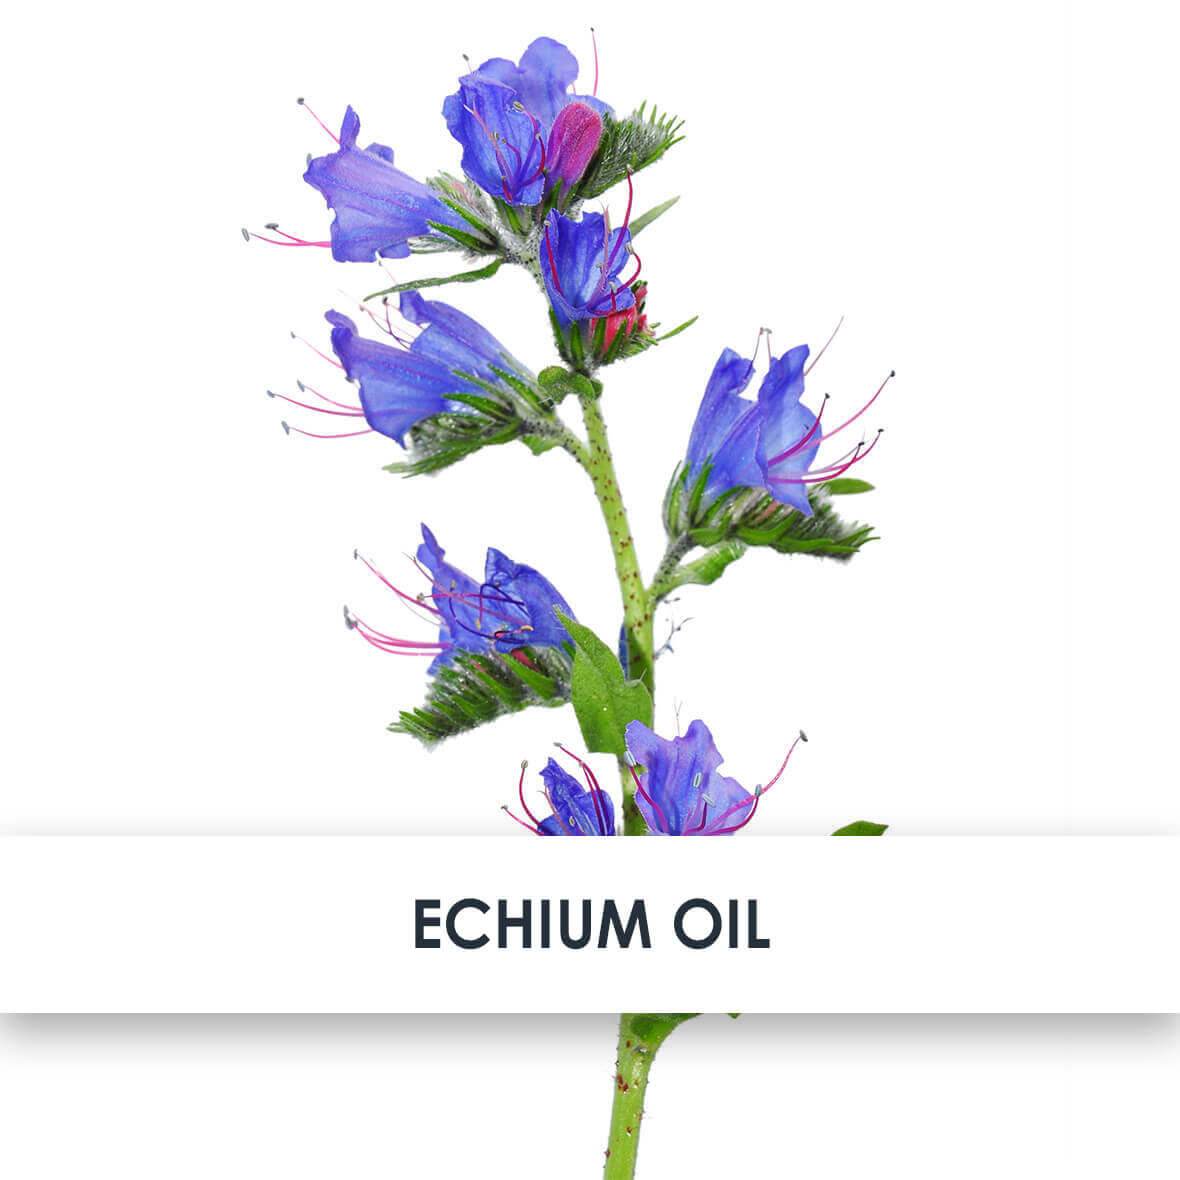 Echium Oil Skincare Benefits